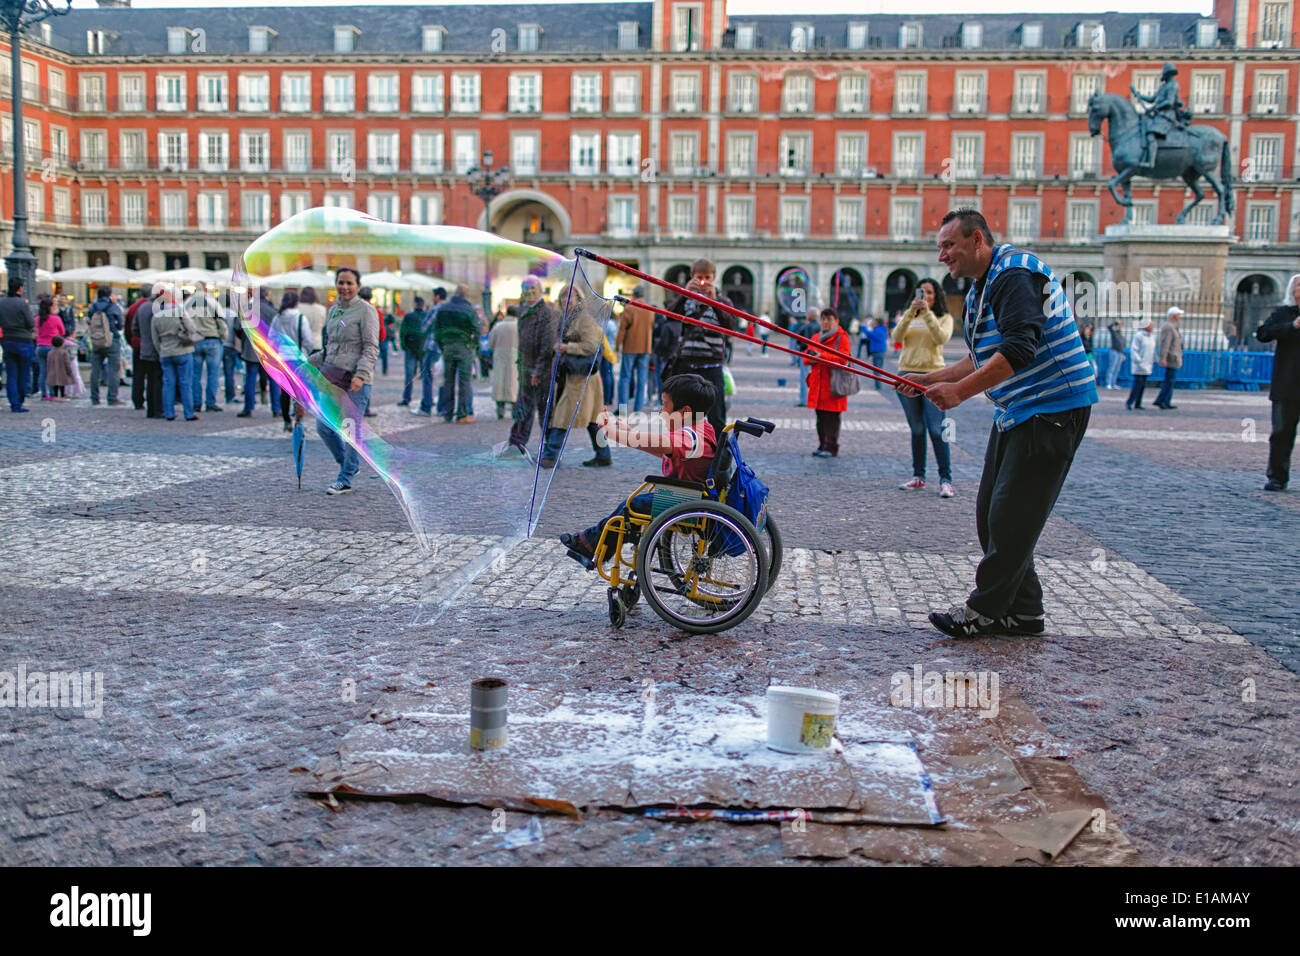 Soap Bubble Artist Enveloping Handicapped Child in a Wheelchair with Soap Bubble, Plaza Mayor, Madrid, Spain - Stock Image